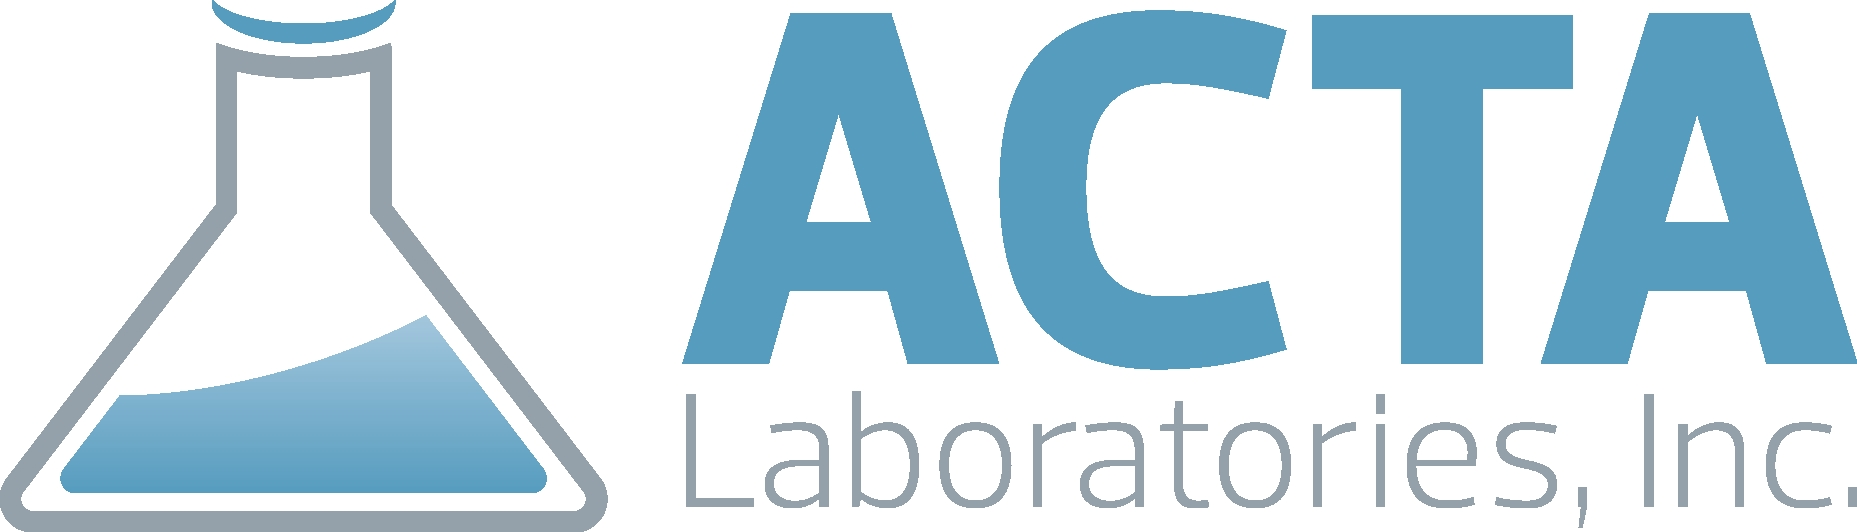 ACTA Laboratories, Inc. - FDA registered, cGMP, Pharmaceutical Testing, Nutritional Testing, Medical Device Testing, Botantical Testing, High Performance Liquid Chromatography (HPLC)